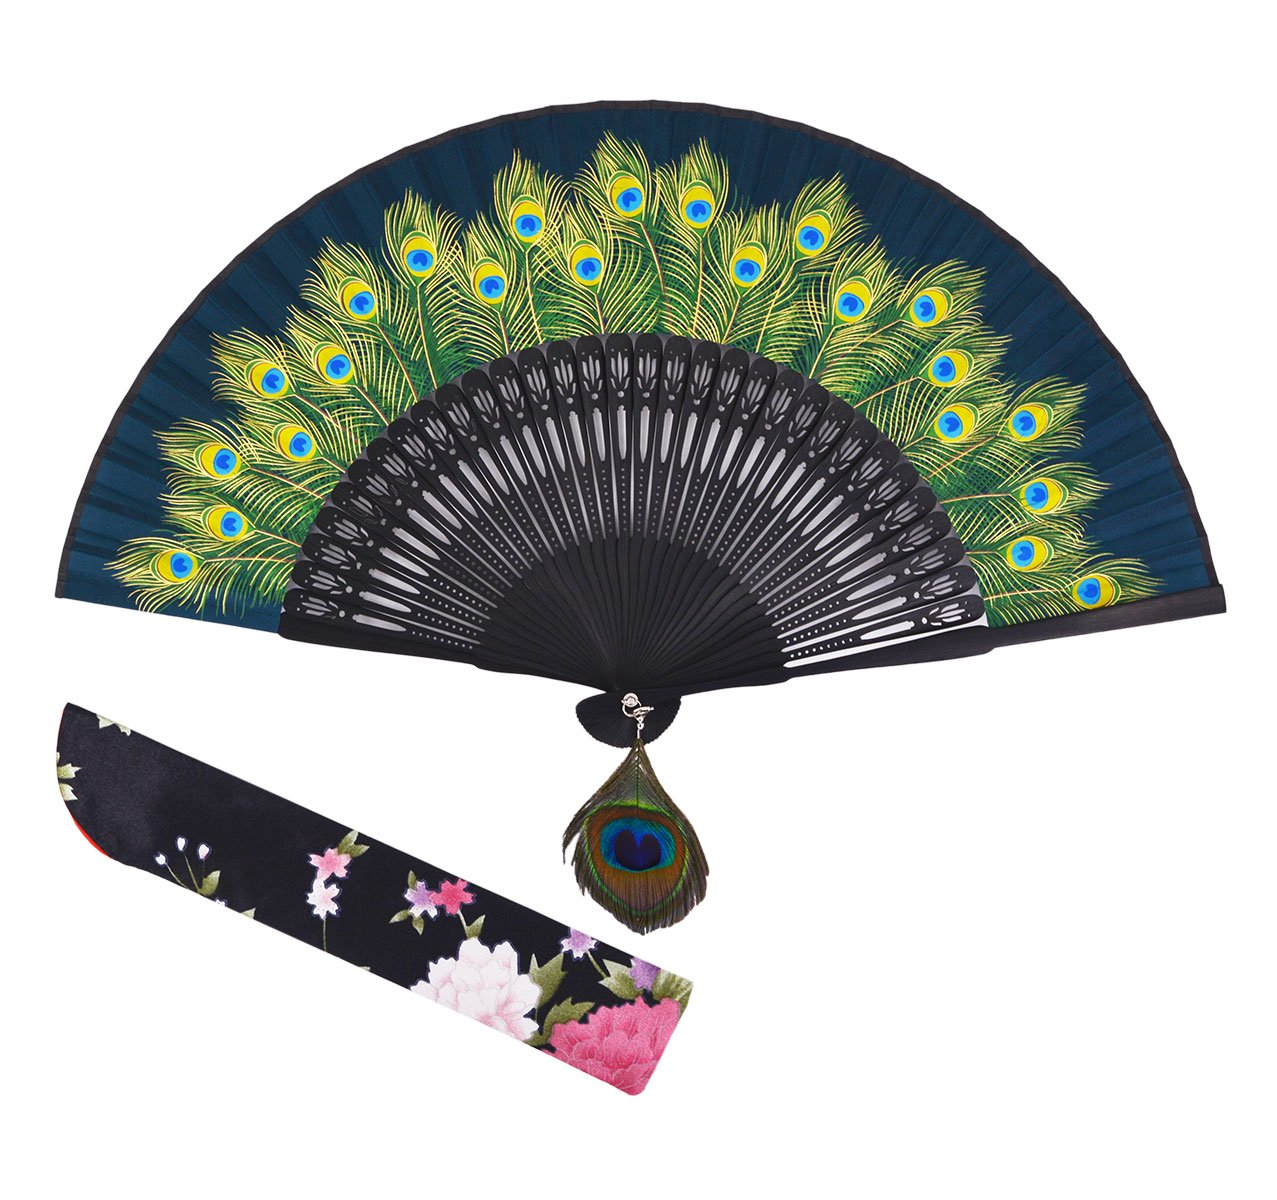 Amajiji 8.27'' Peacock Chinease/Japanese Hand Held Silk Folding Fan with Bamboo Frame,Hollow Carve Patterns Bamboo Frame Women Hand Folding Fans Hand Fan Gift fan Craft fan Folding Fan (Green) by Amajiji